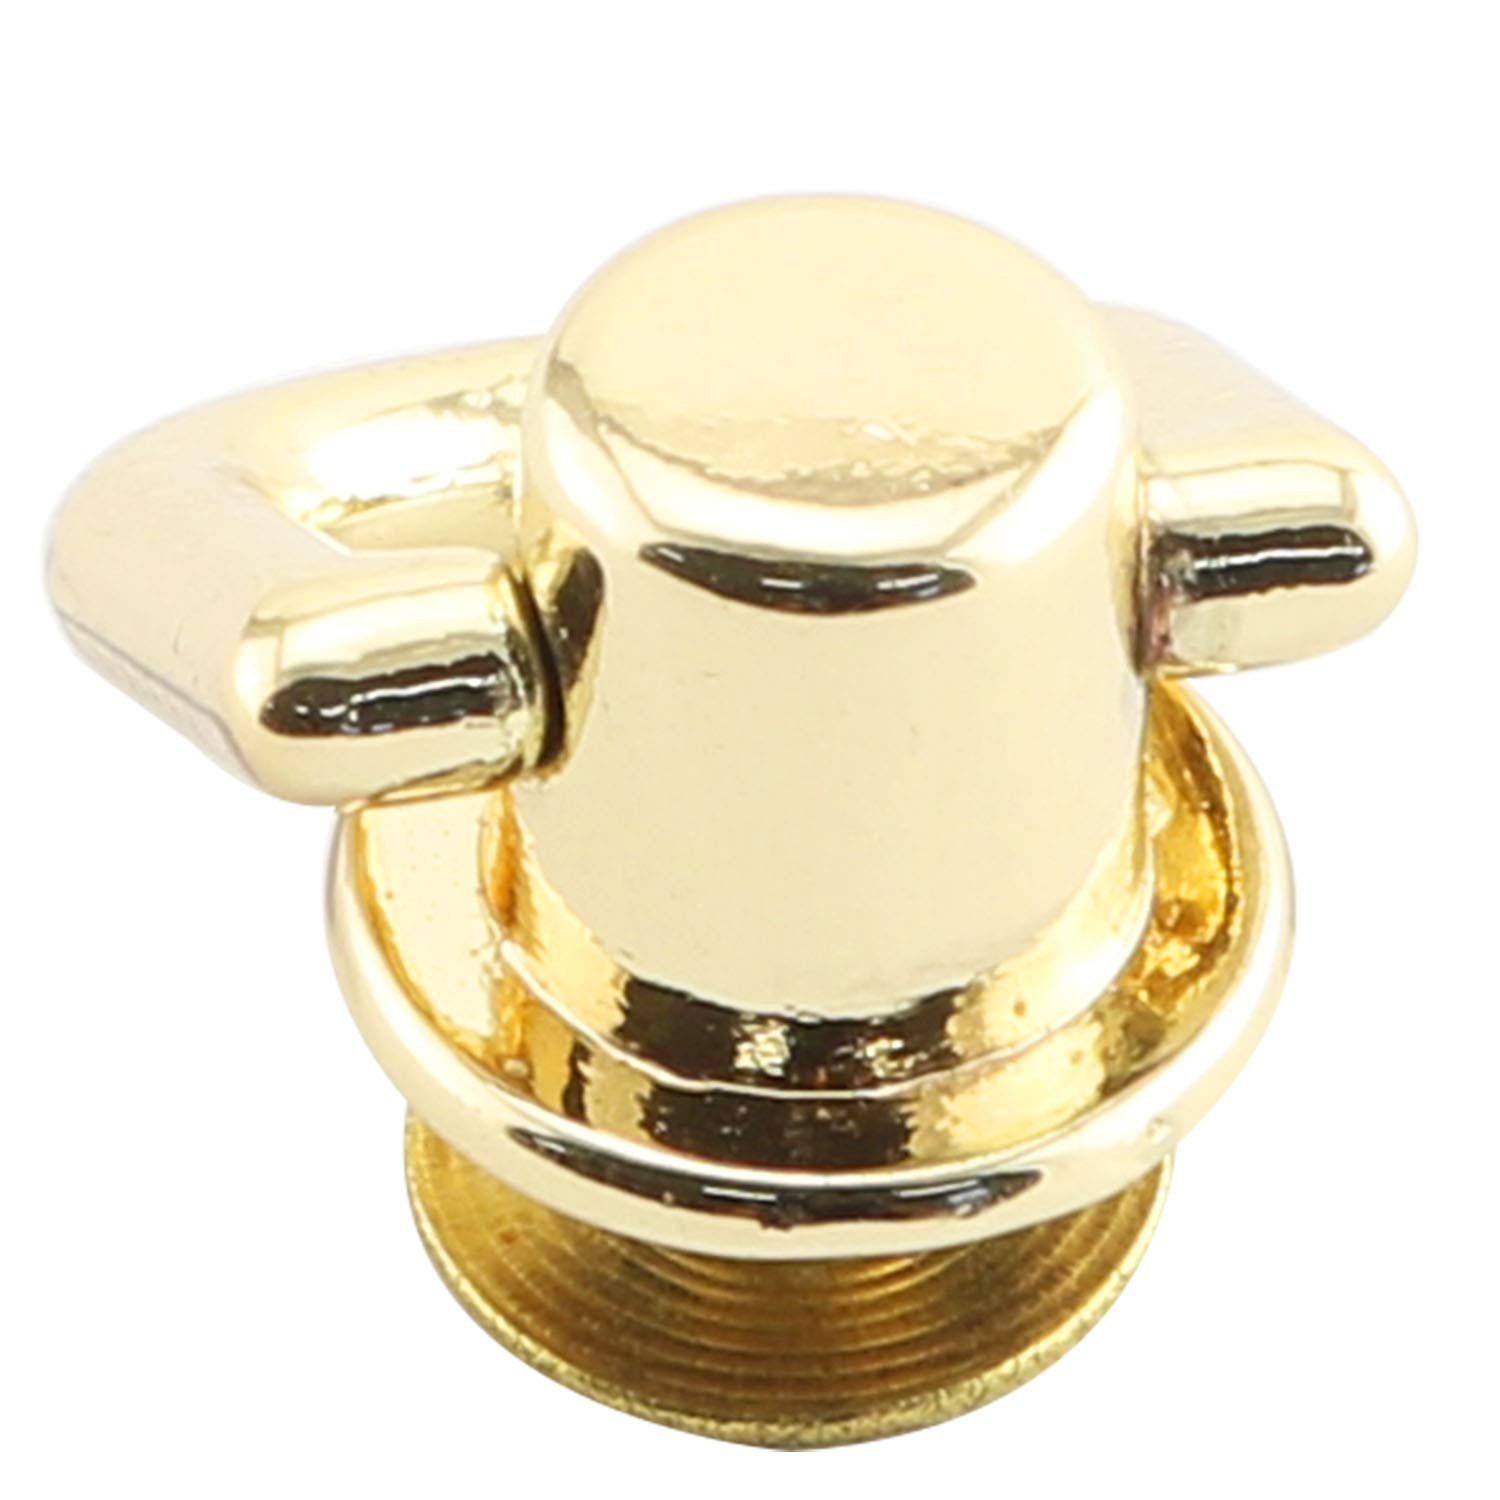 Youliang 6pcs 360 Degree Rotatable Ball Post Head Buttons with D Ring Metal Ring for Backpack Hardware Accessories Pale Gold